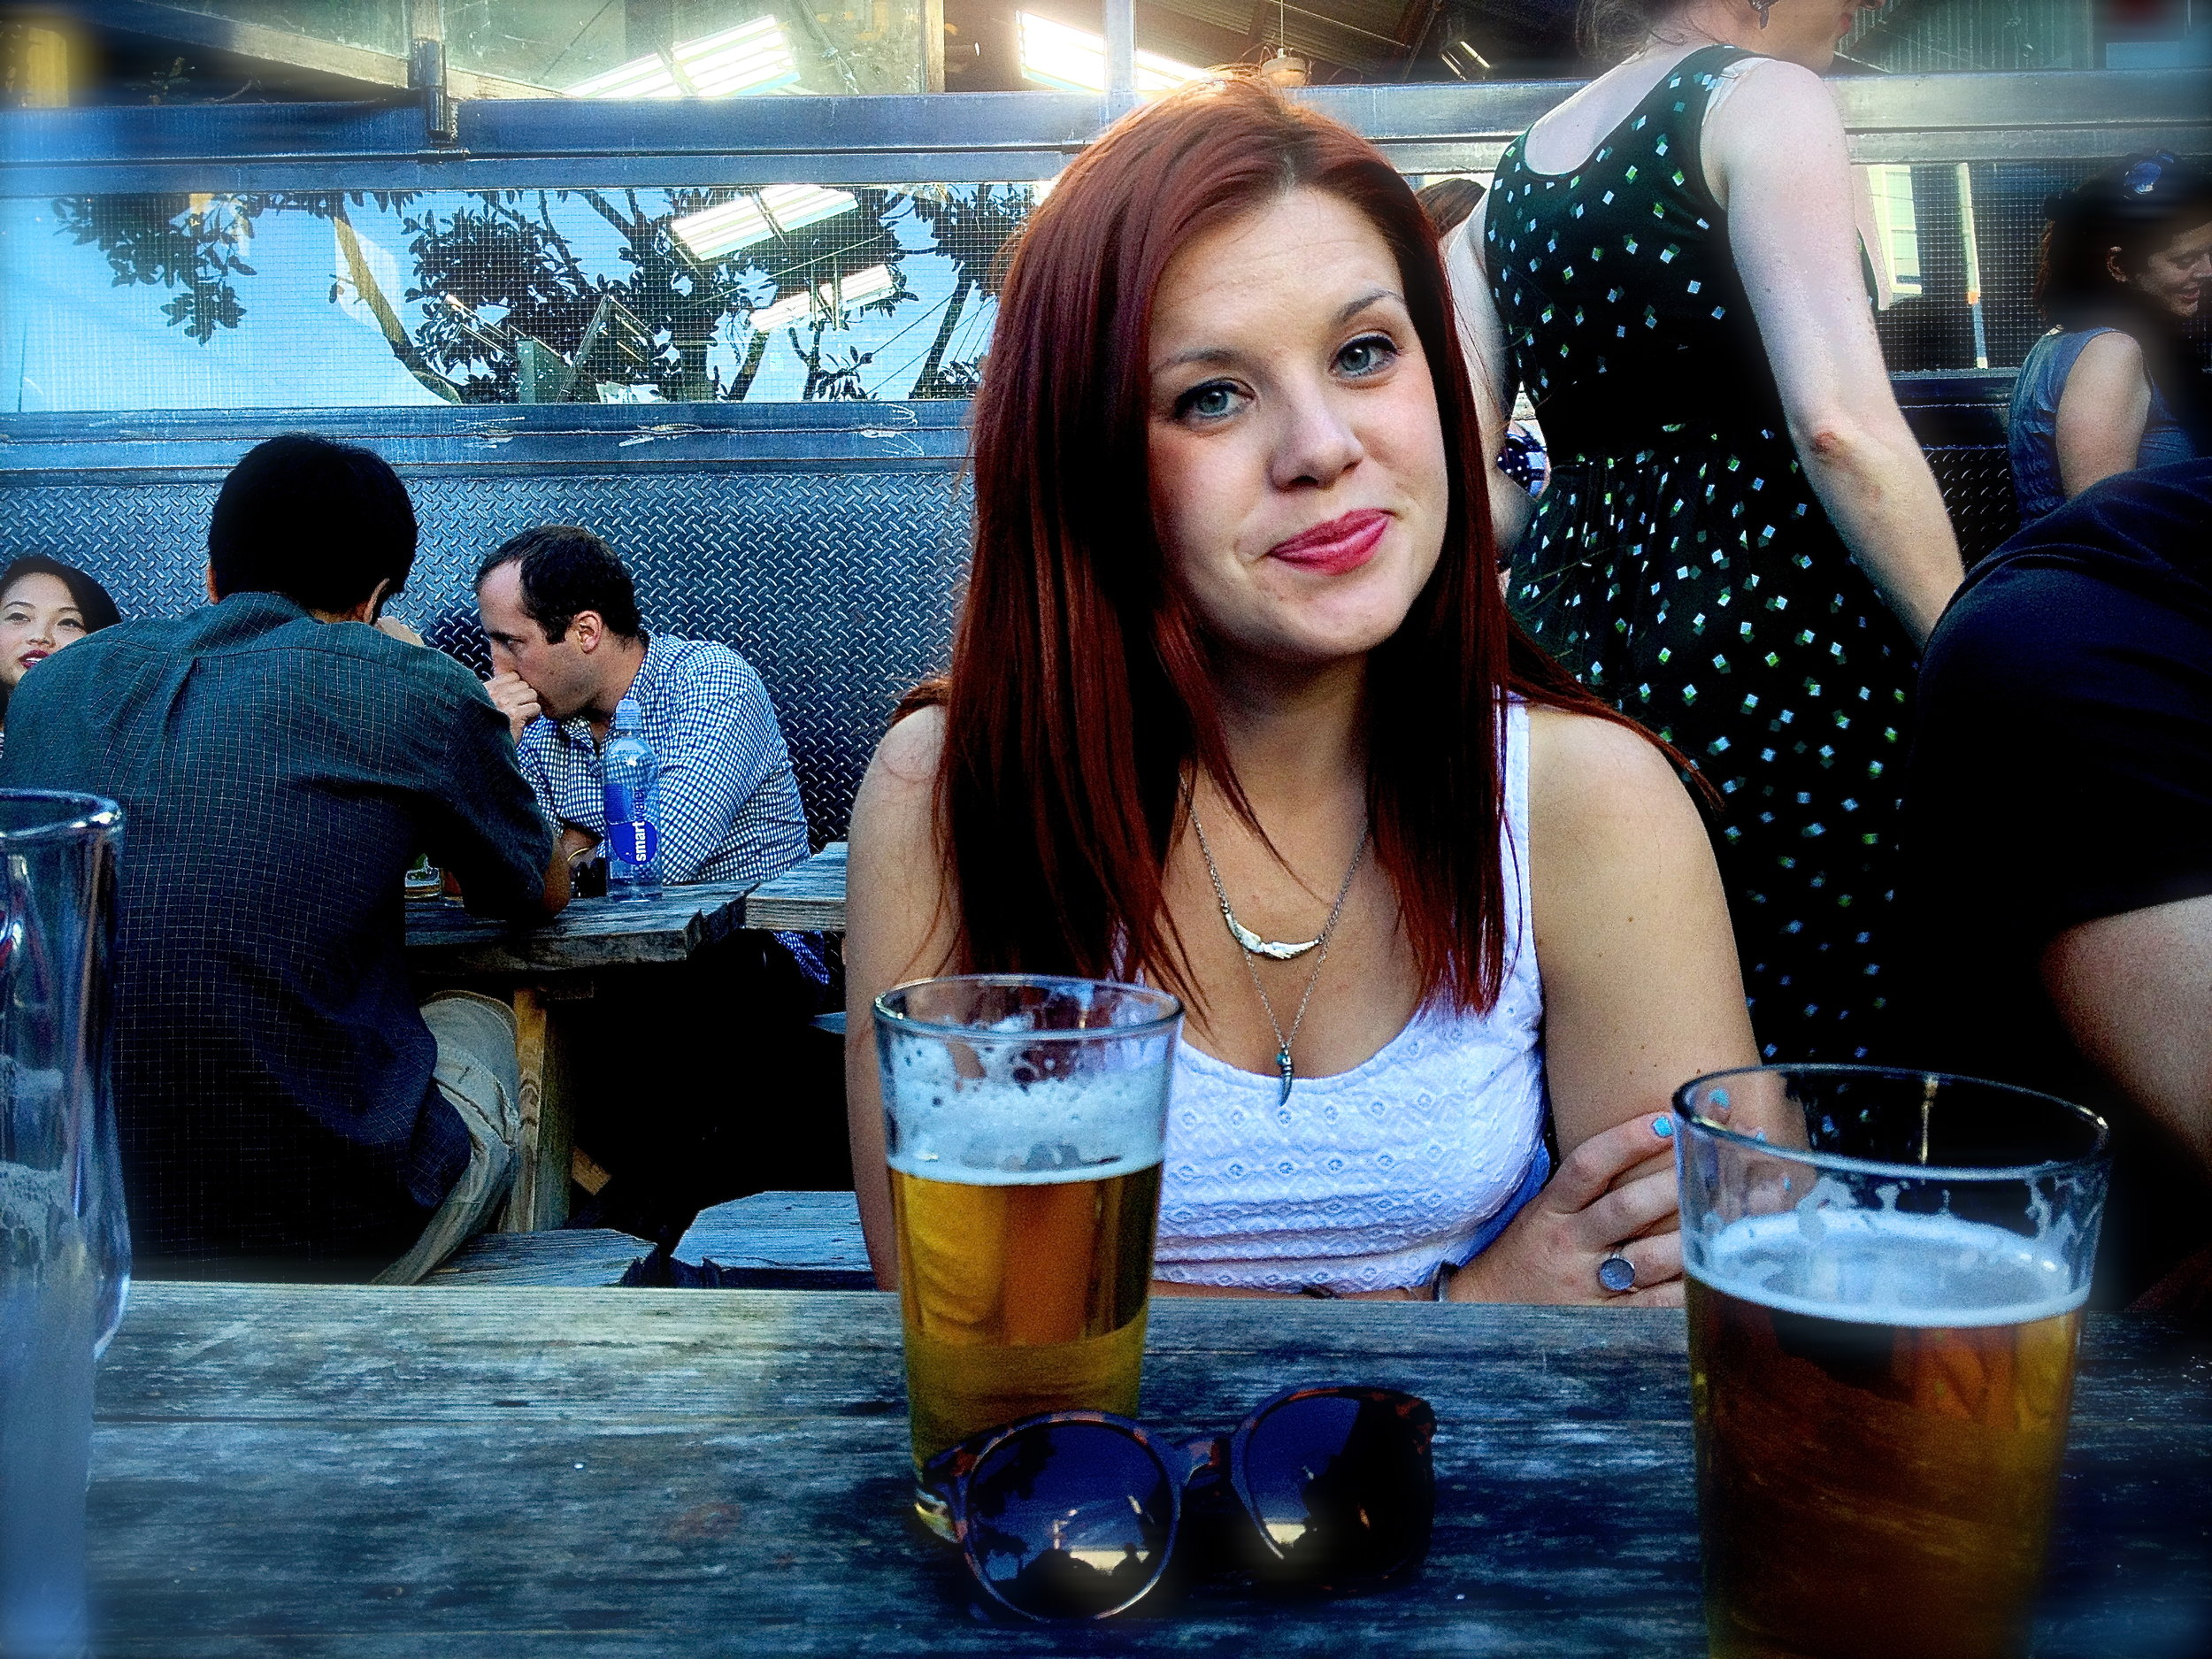 Friday afternoon beer with Andi at Southern Pacific.